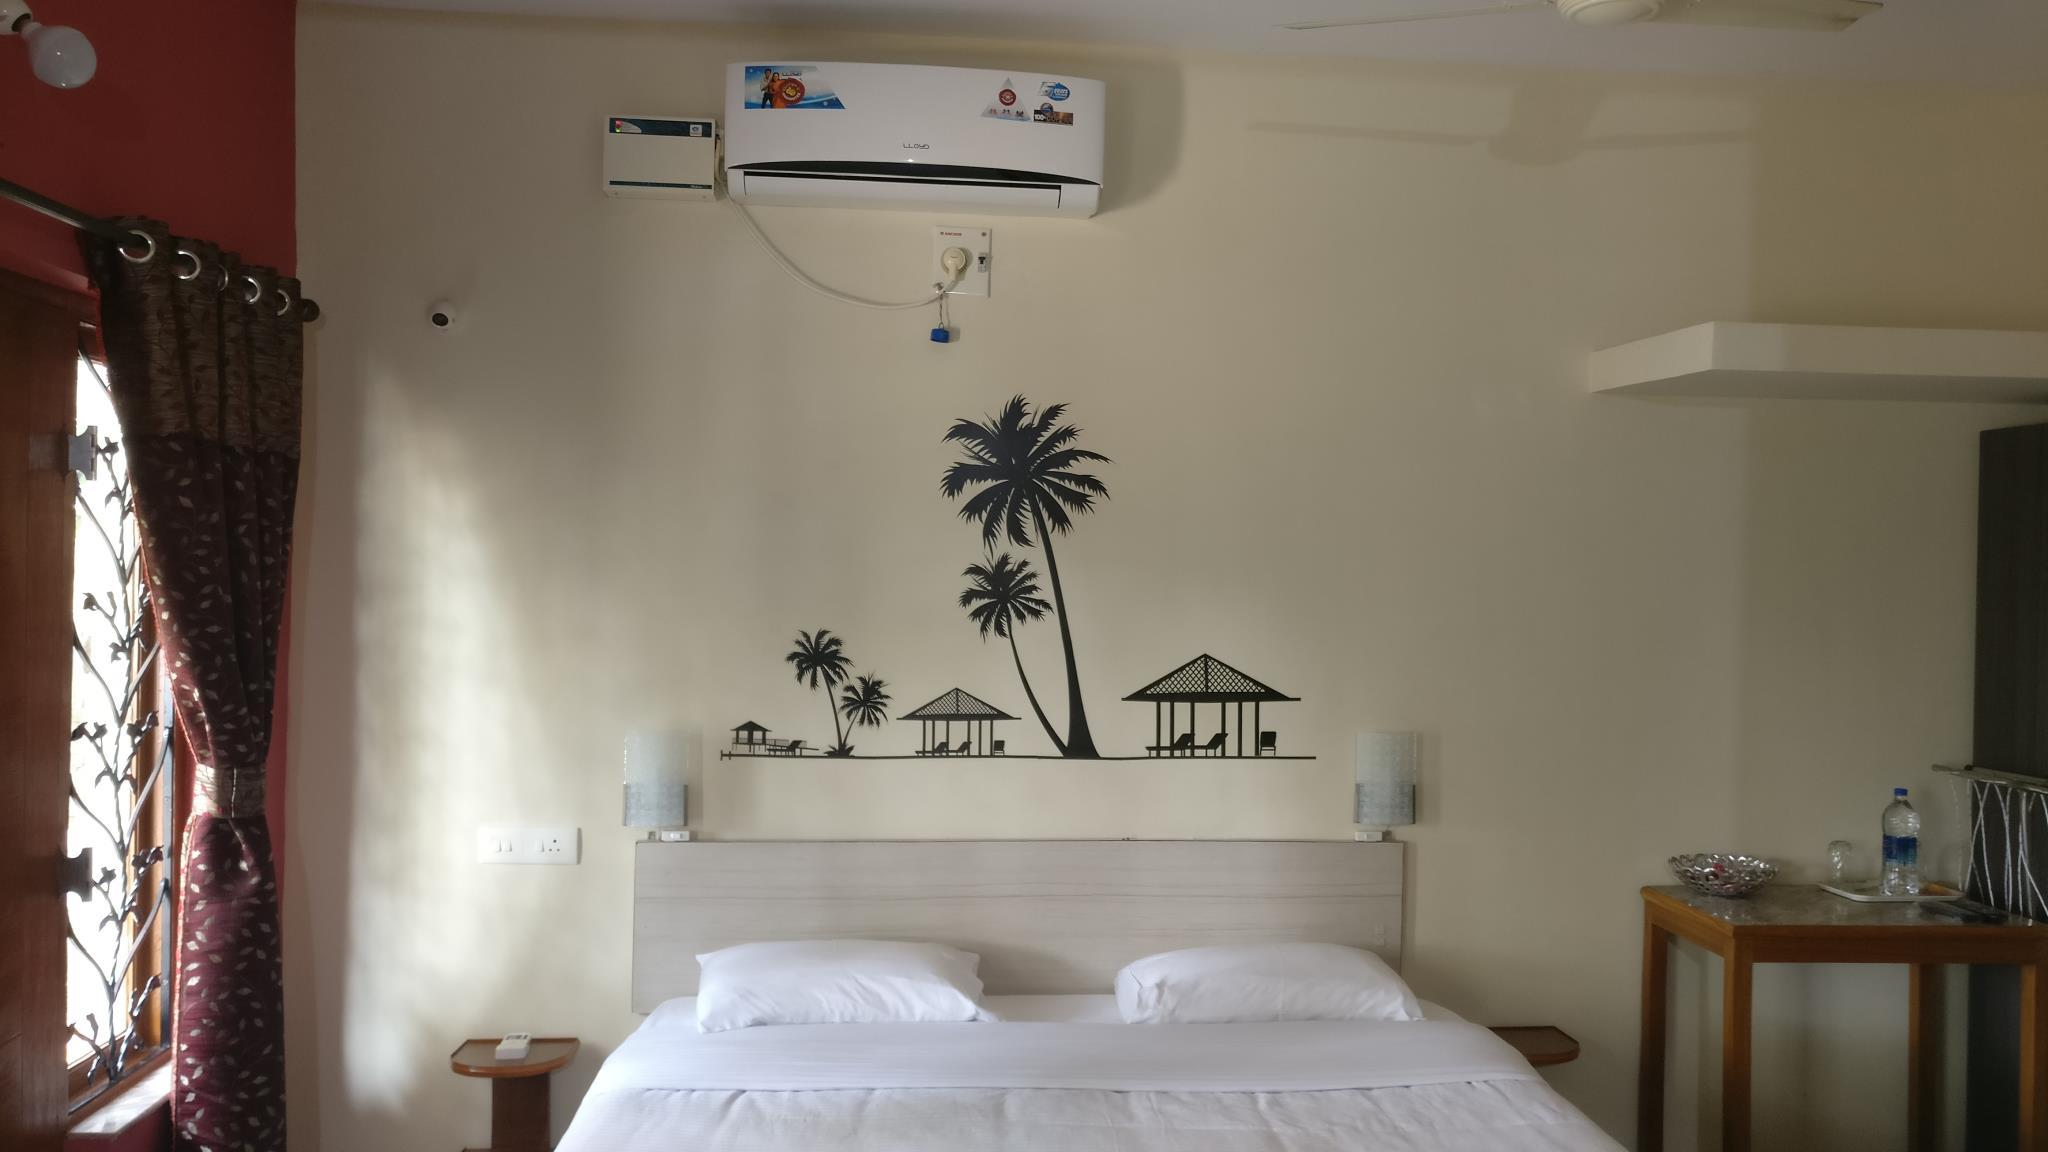 Deluxe kamer met airconditioning (Deluxe Room Air Conditioning)